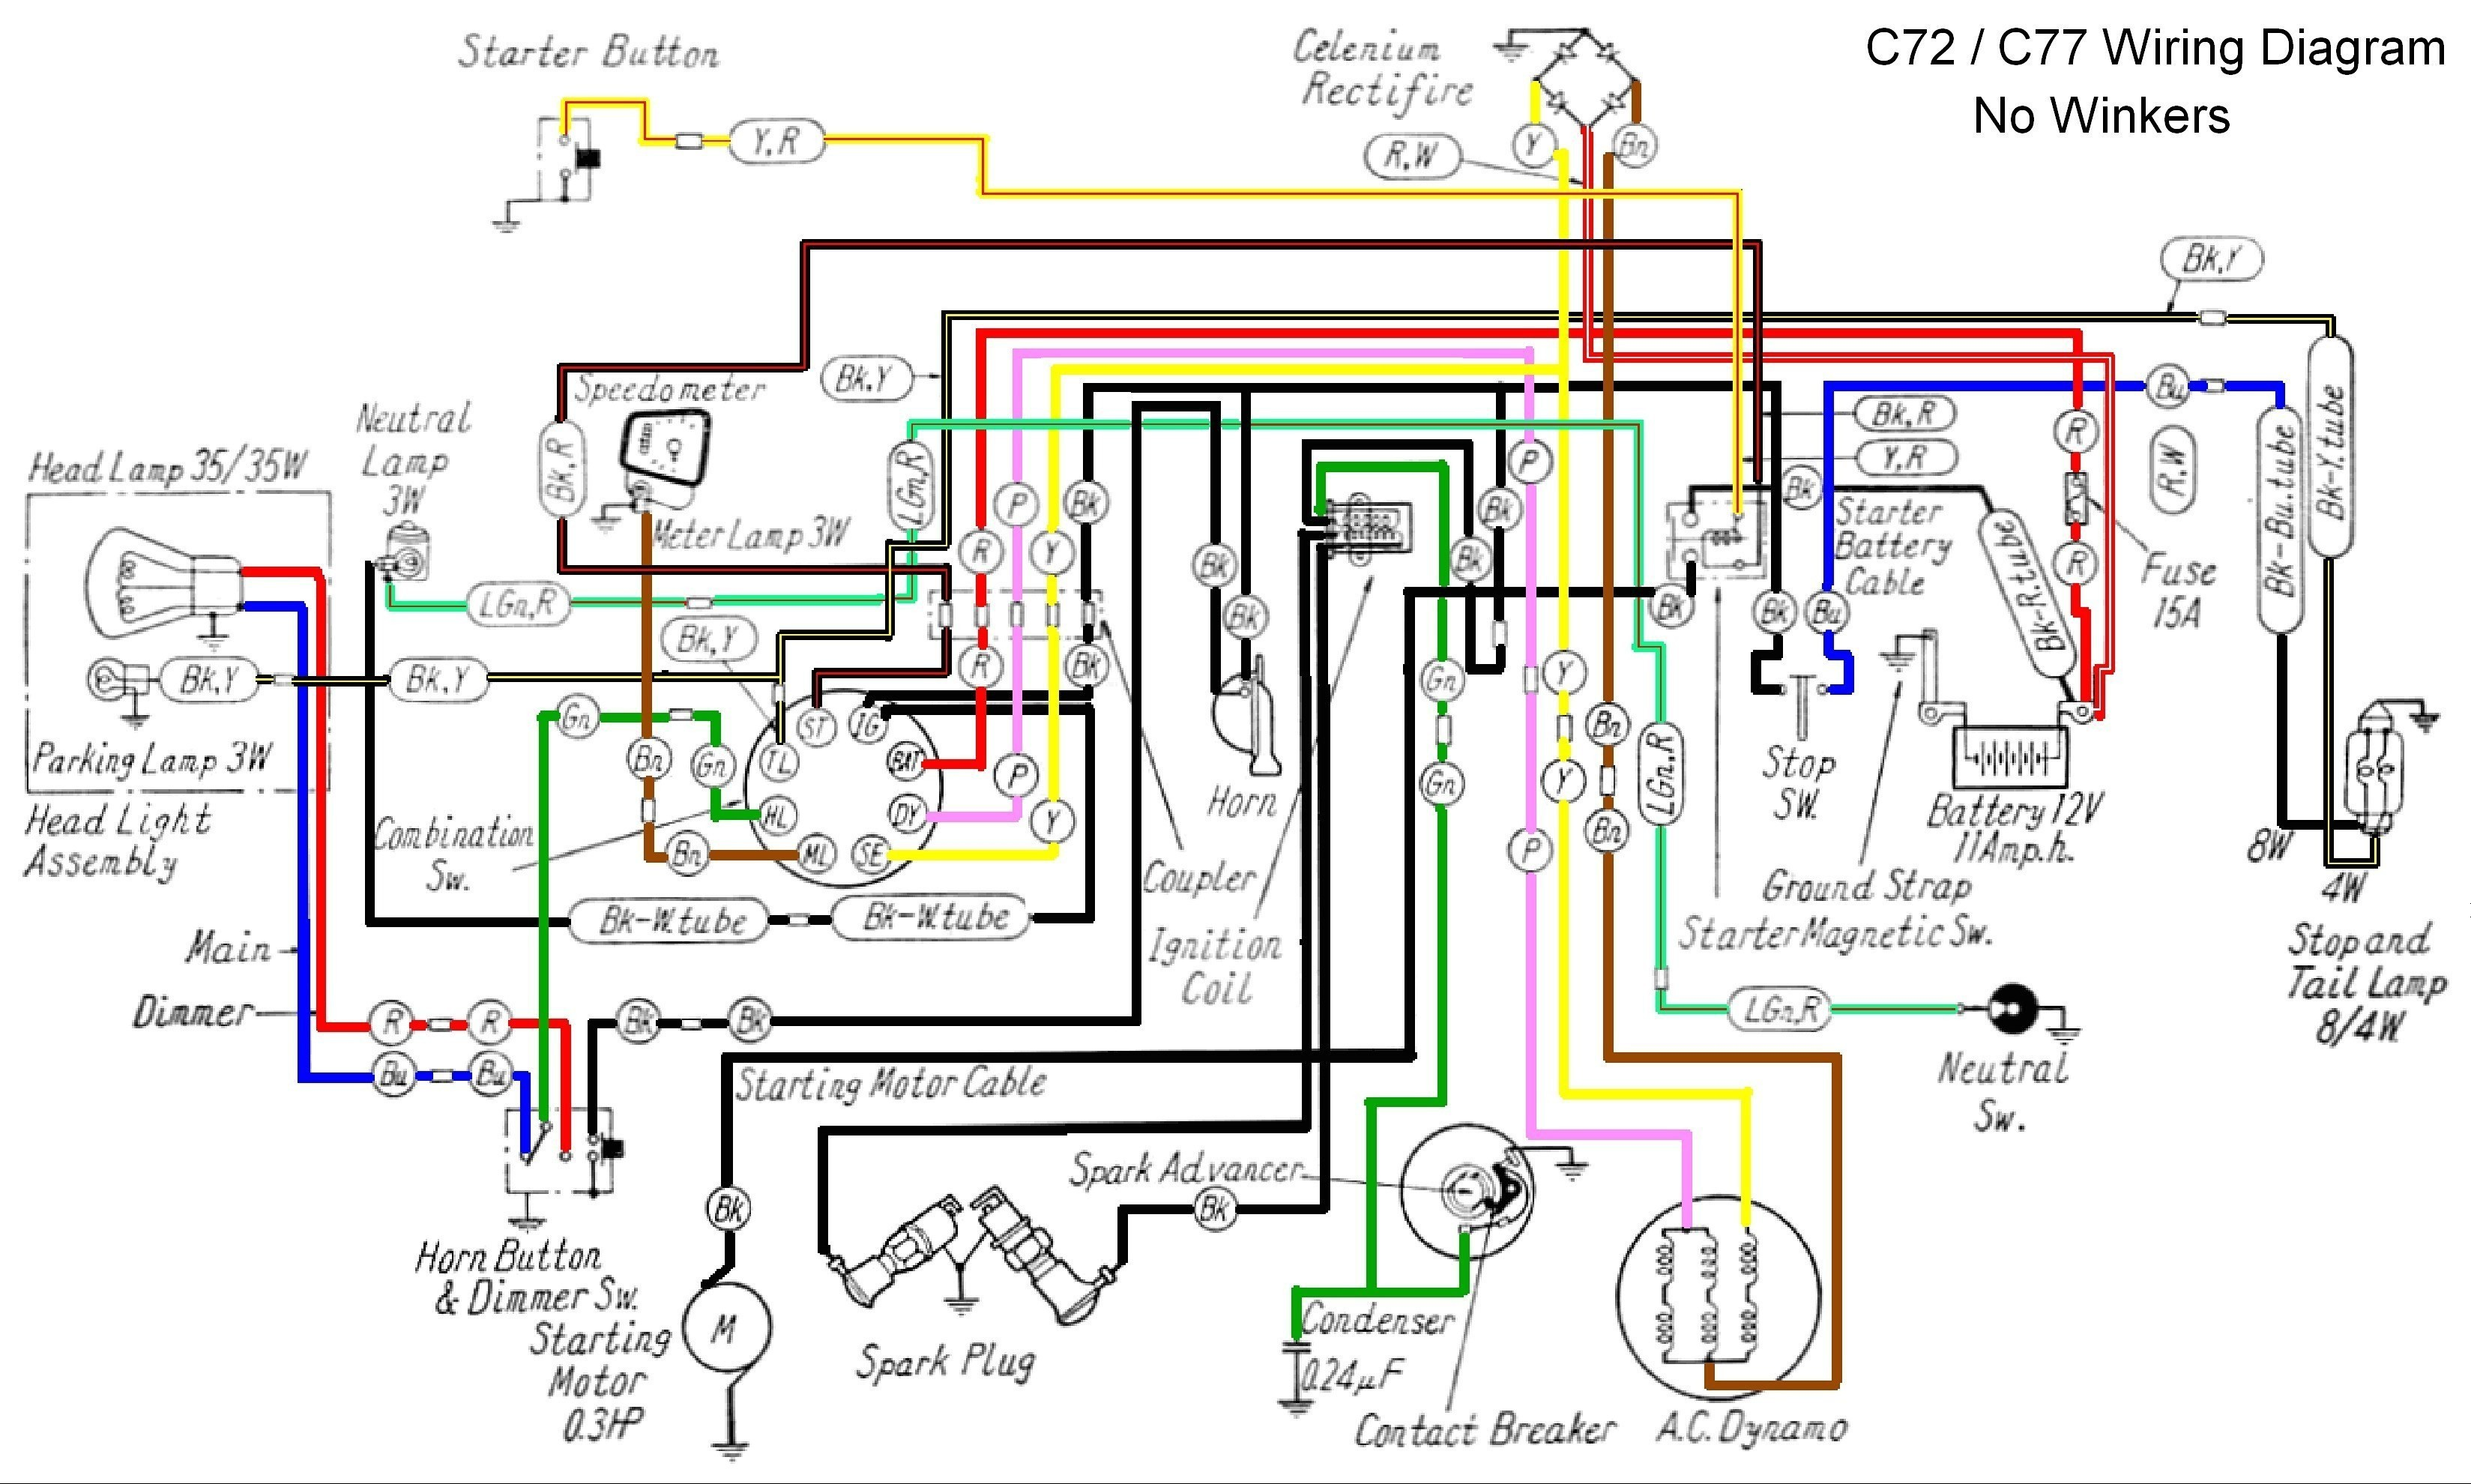 Cx500 Wiring Diagram Awesome | Wiring Diagram Image on